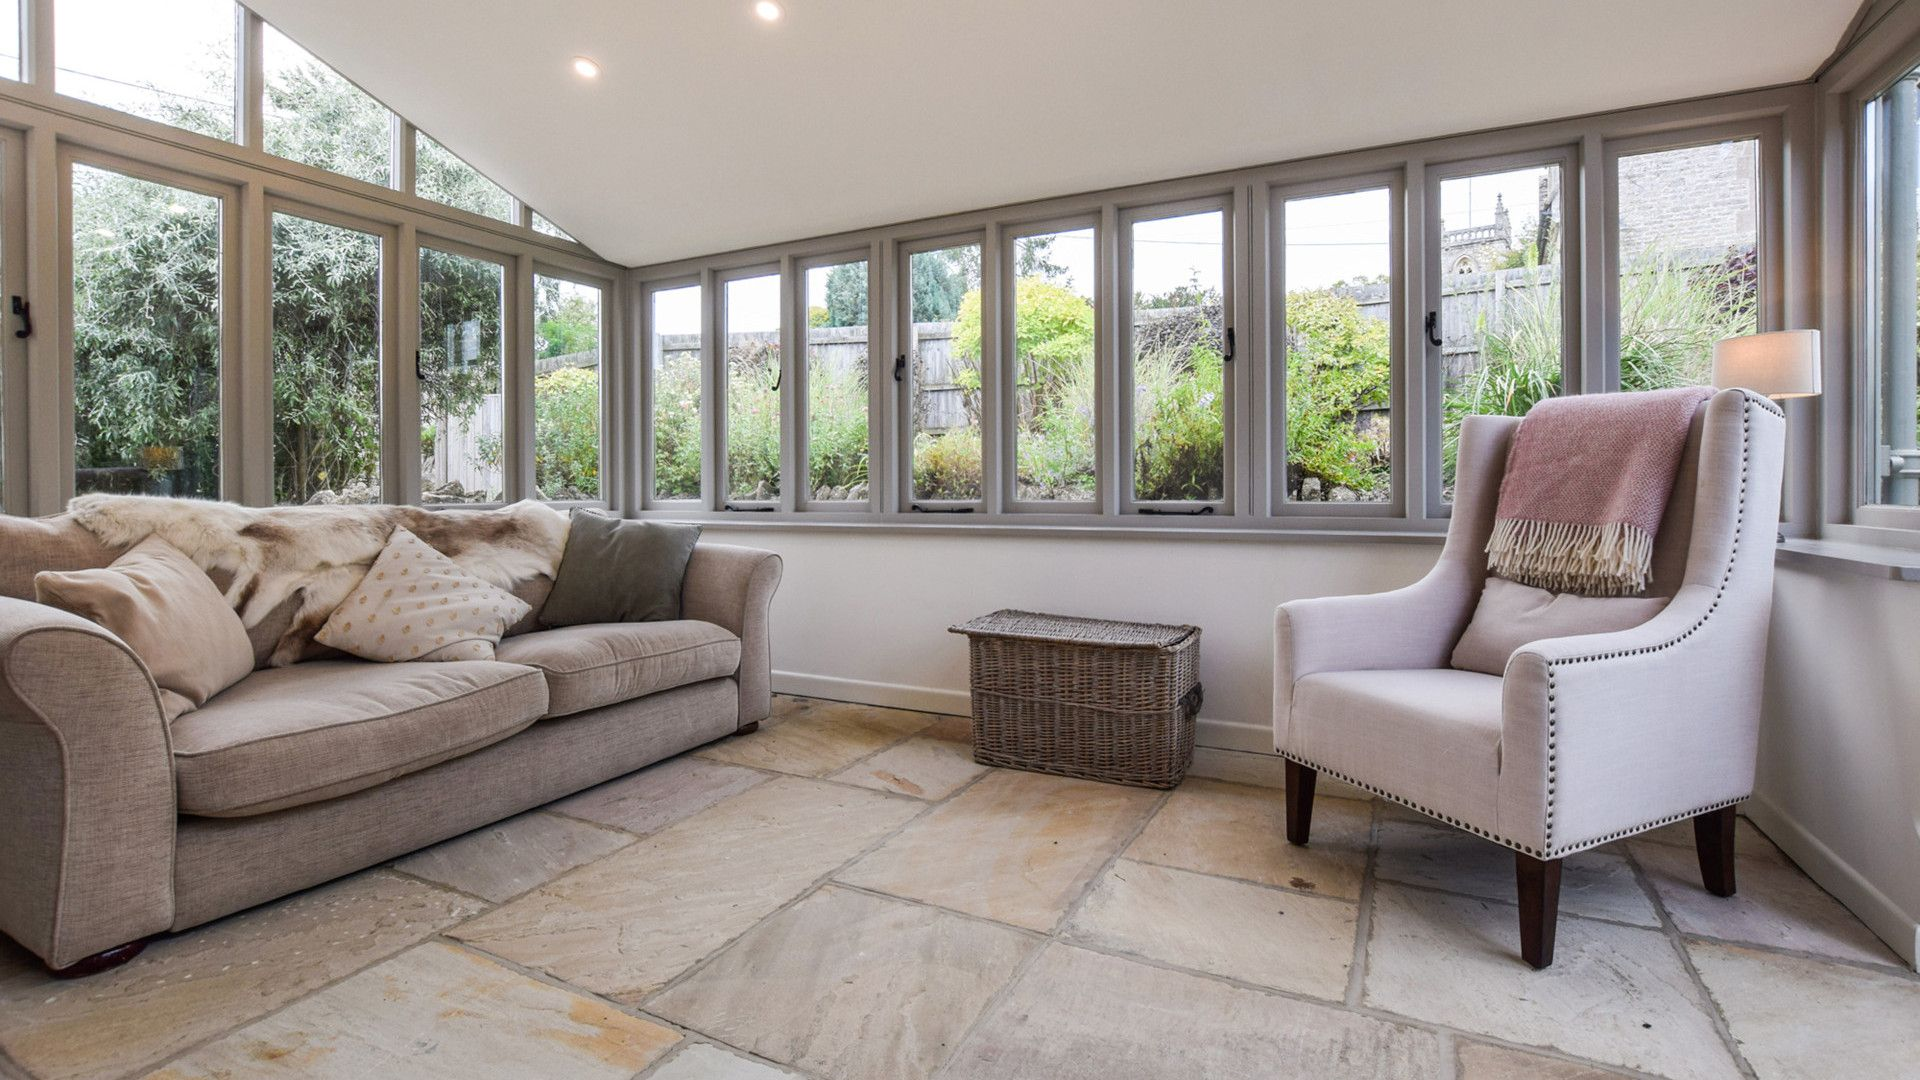 Garden room, Holly Cottage, Bolthole Retreats